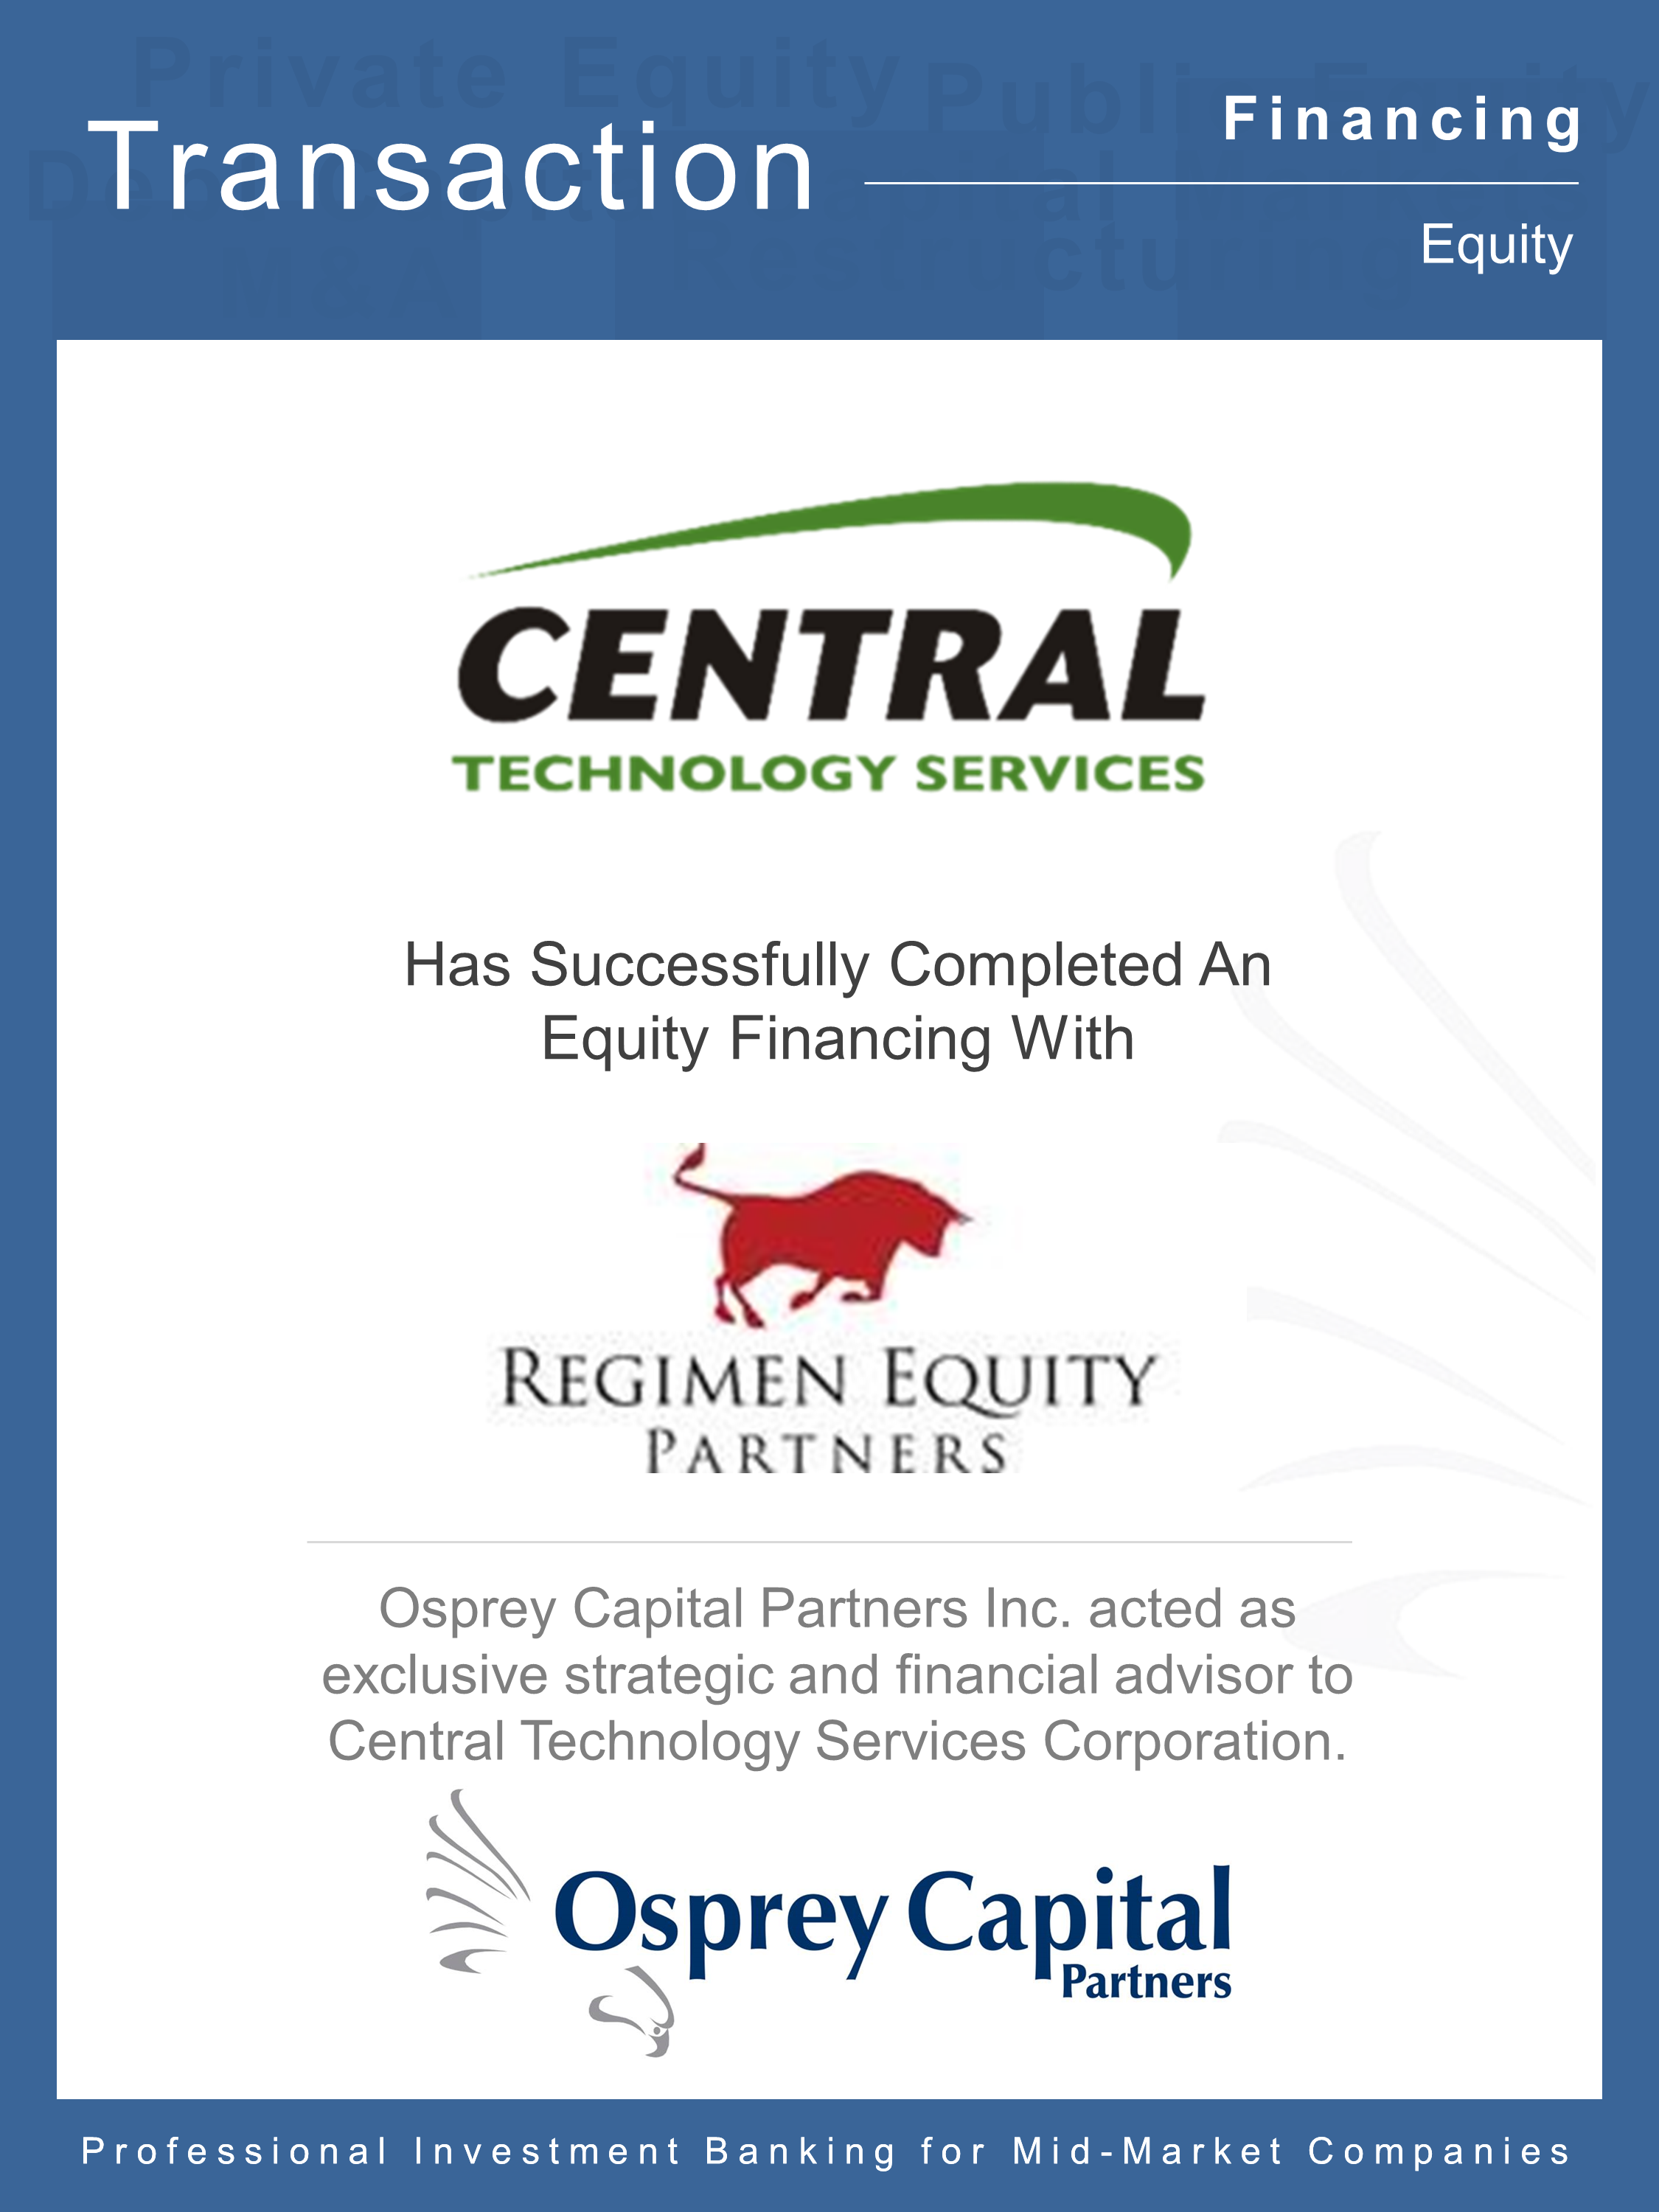 Regimen Partners Invests in Central Technology Services